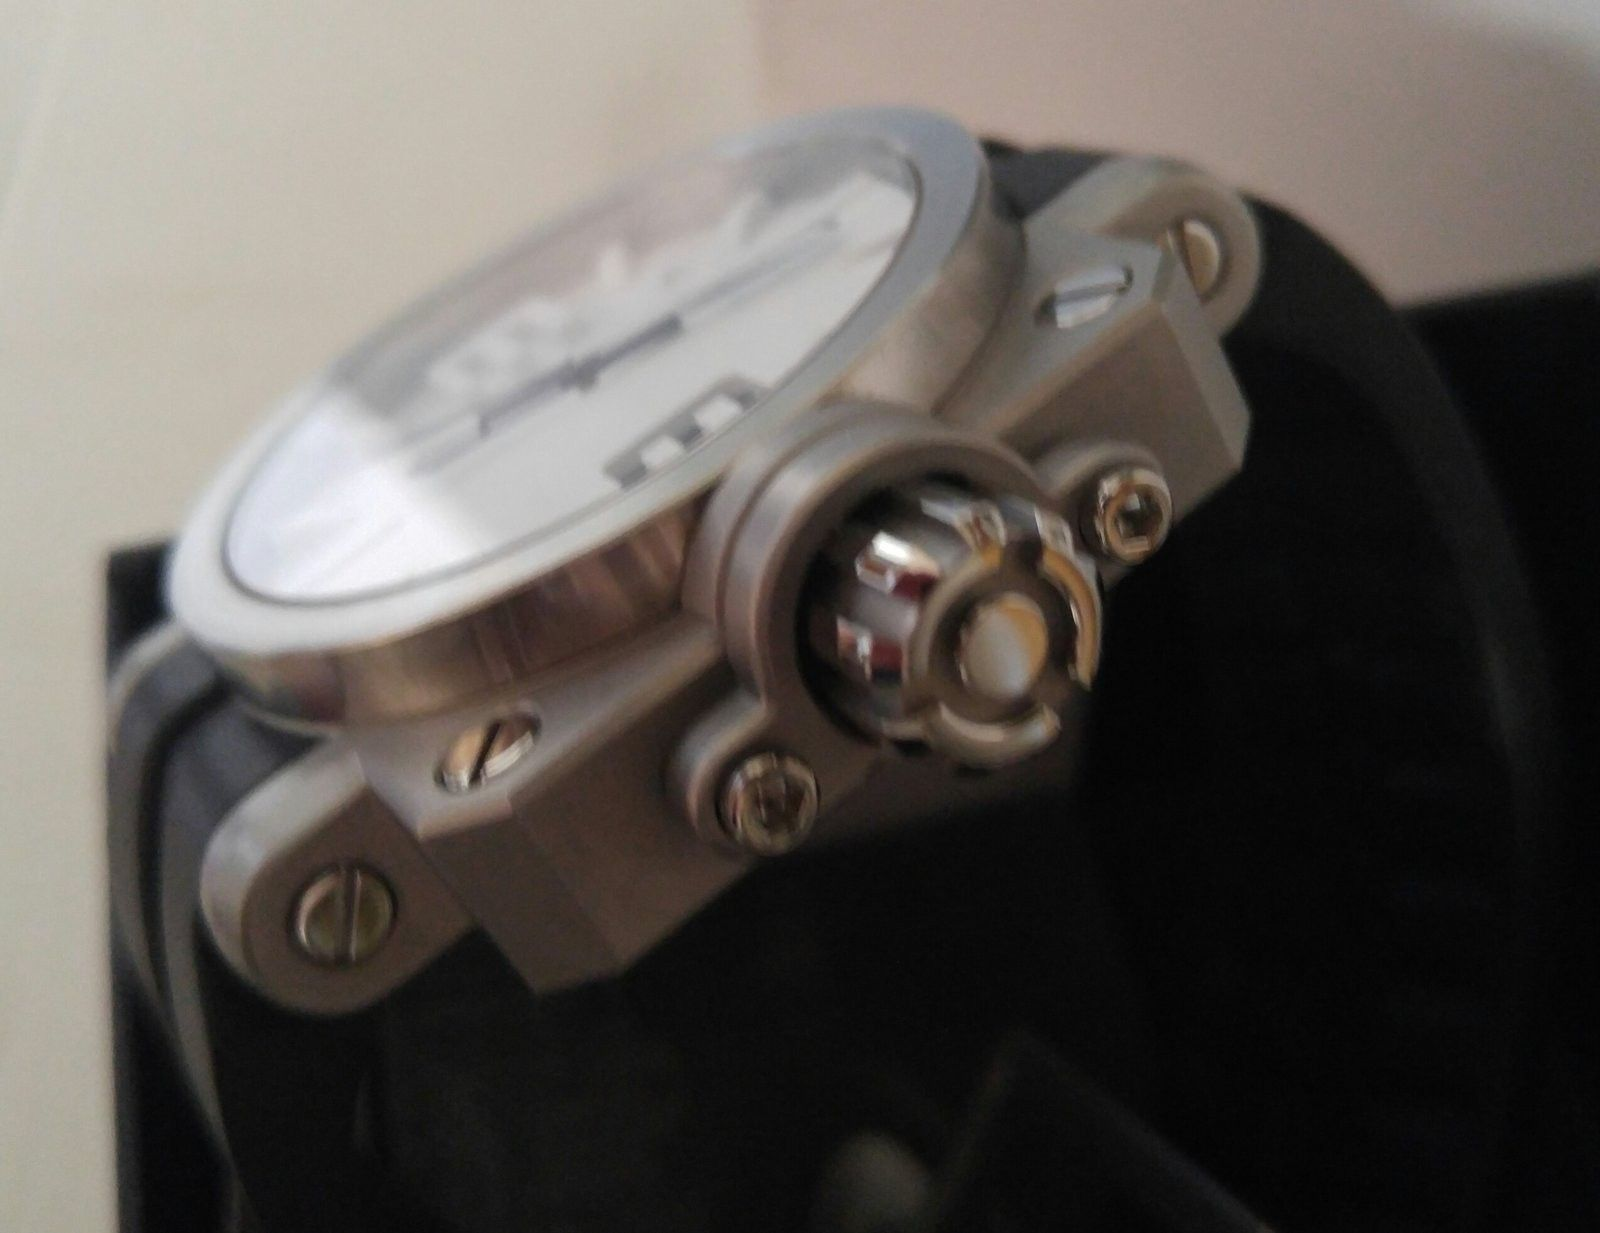 Gearbox white dial SOLD - 20160415_123246-1.jpg